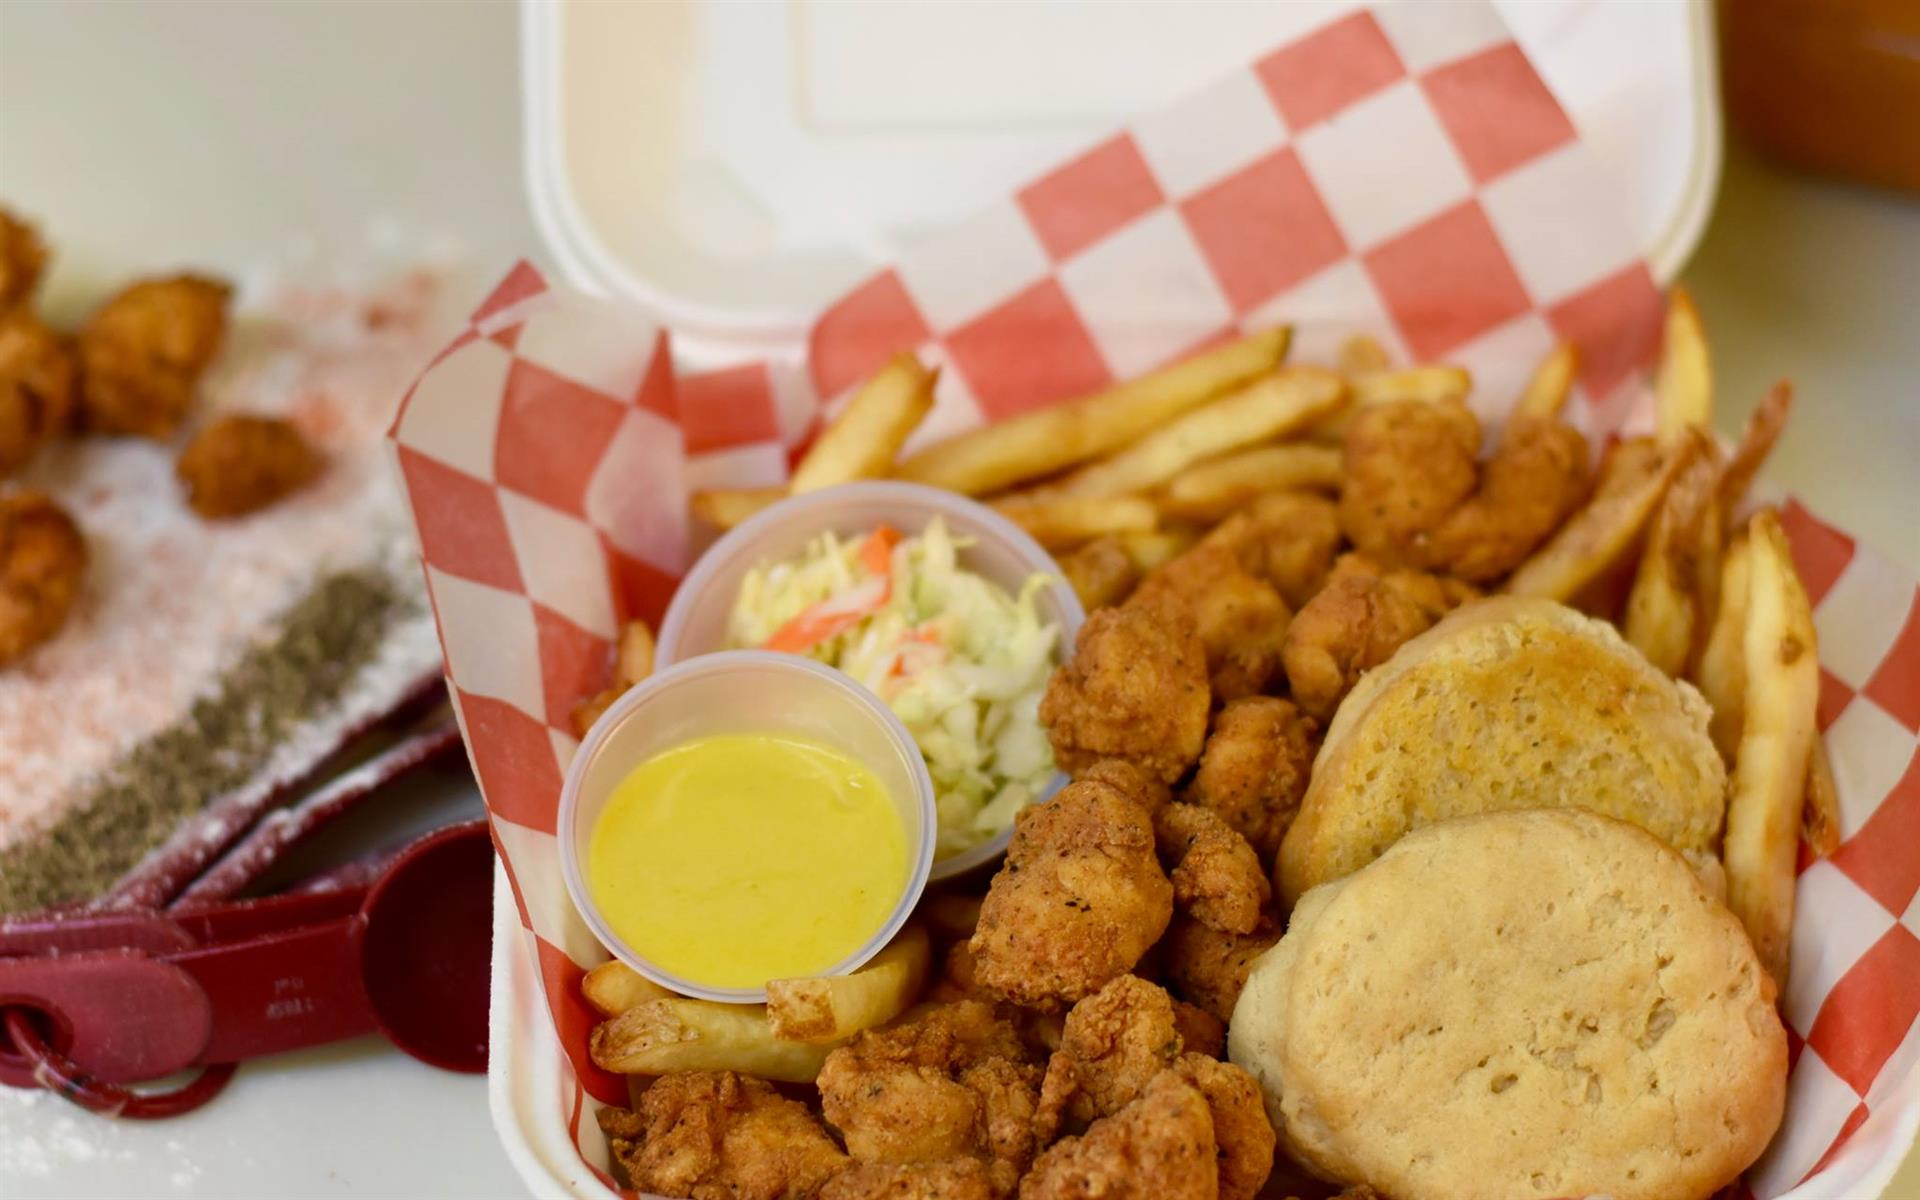 basket of popcorn chicken, fries, biscuits, with cups of coleslaw and honey mustard